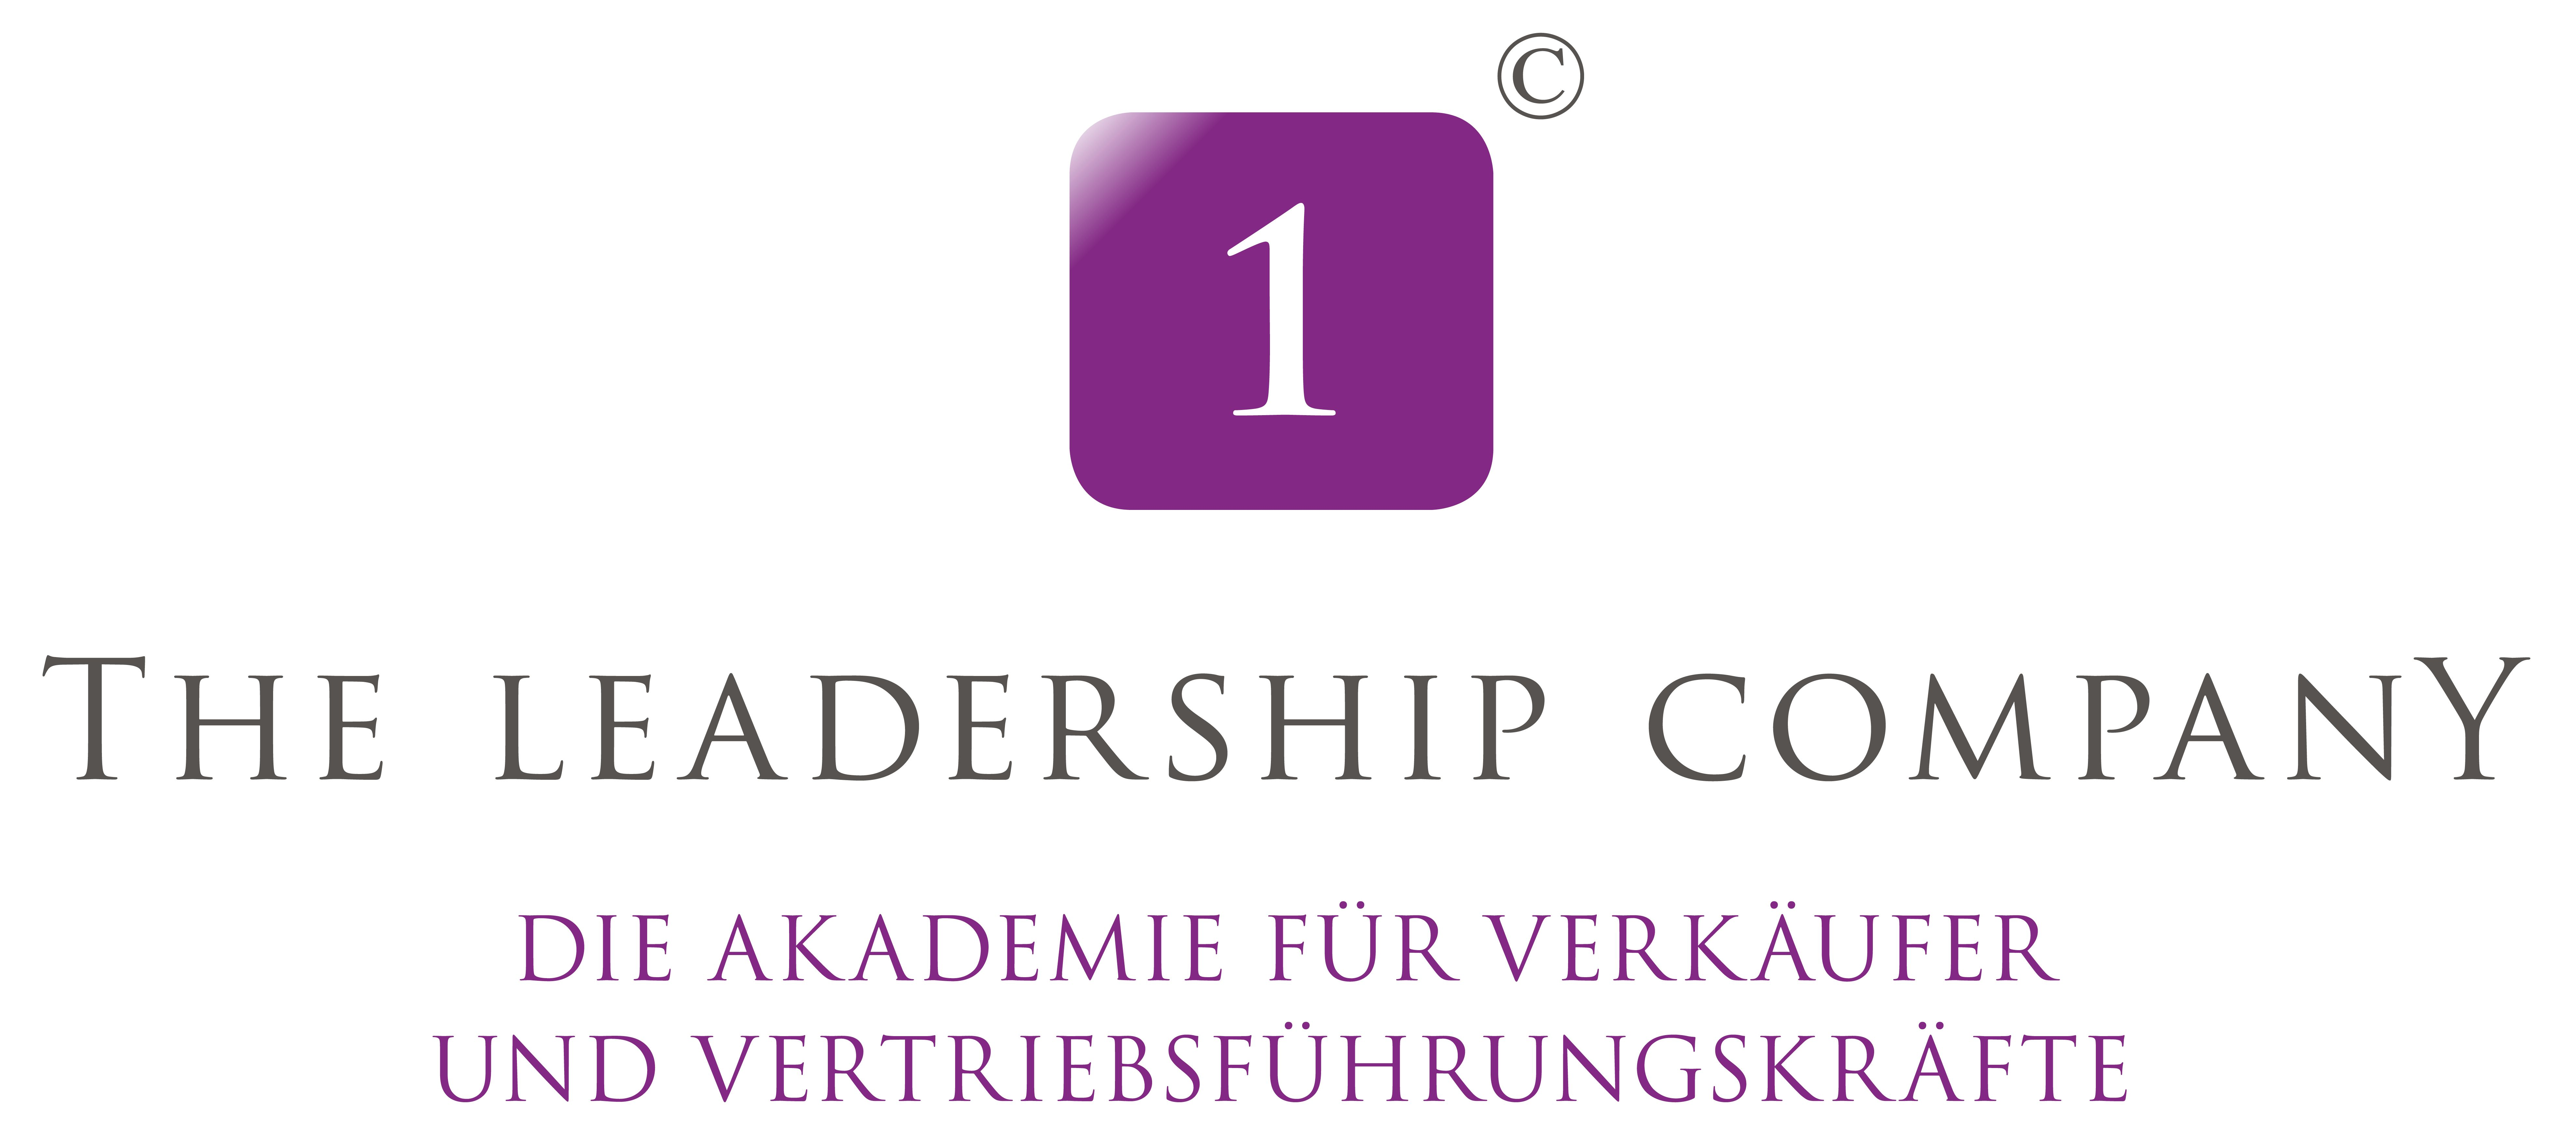 leadership-company